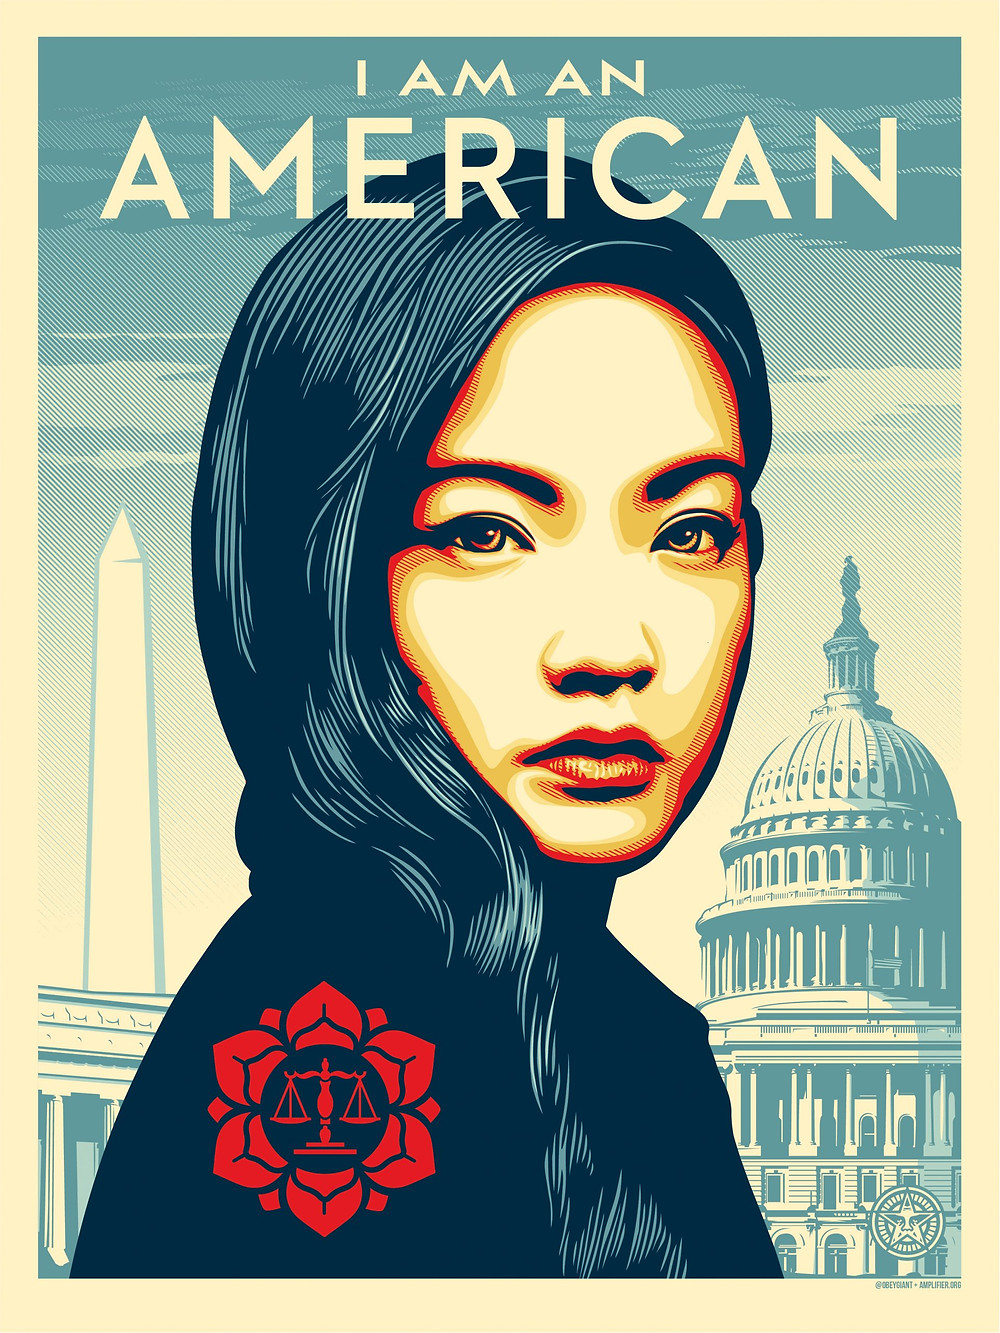 """Free graphic image """"I am an American"""" by Shepard Fairey"""